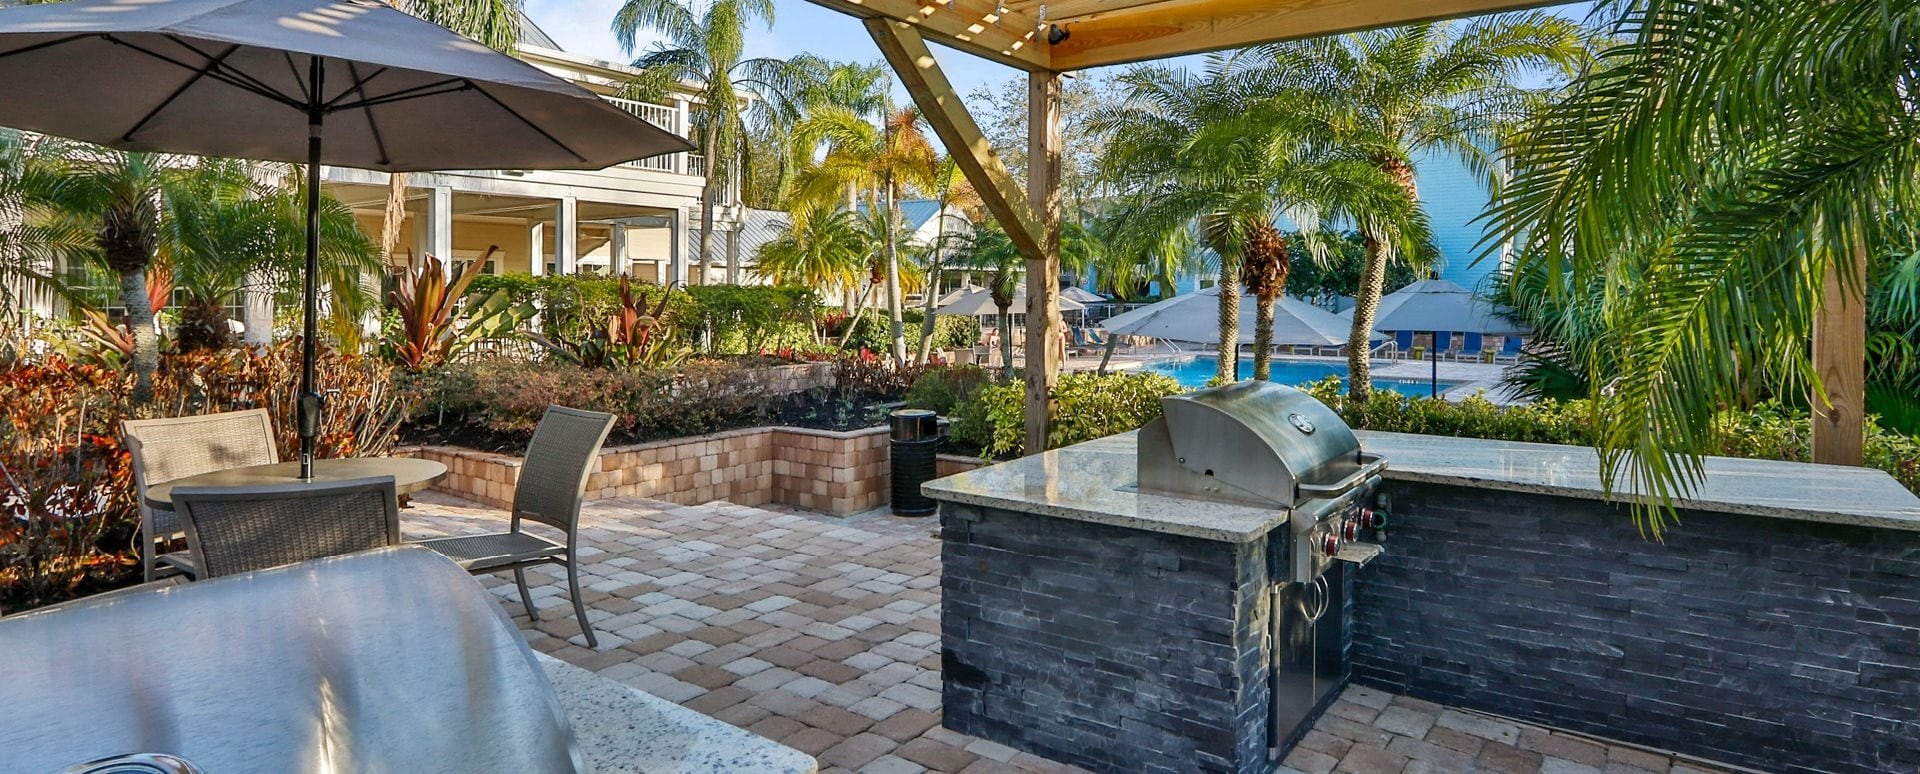 Outdoor gas grills at apartments in South Tampa Florida